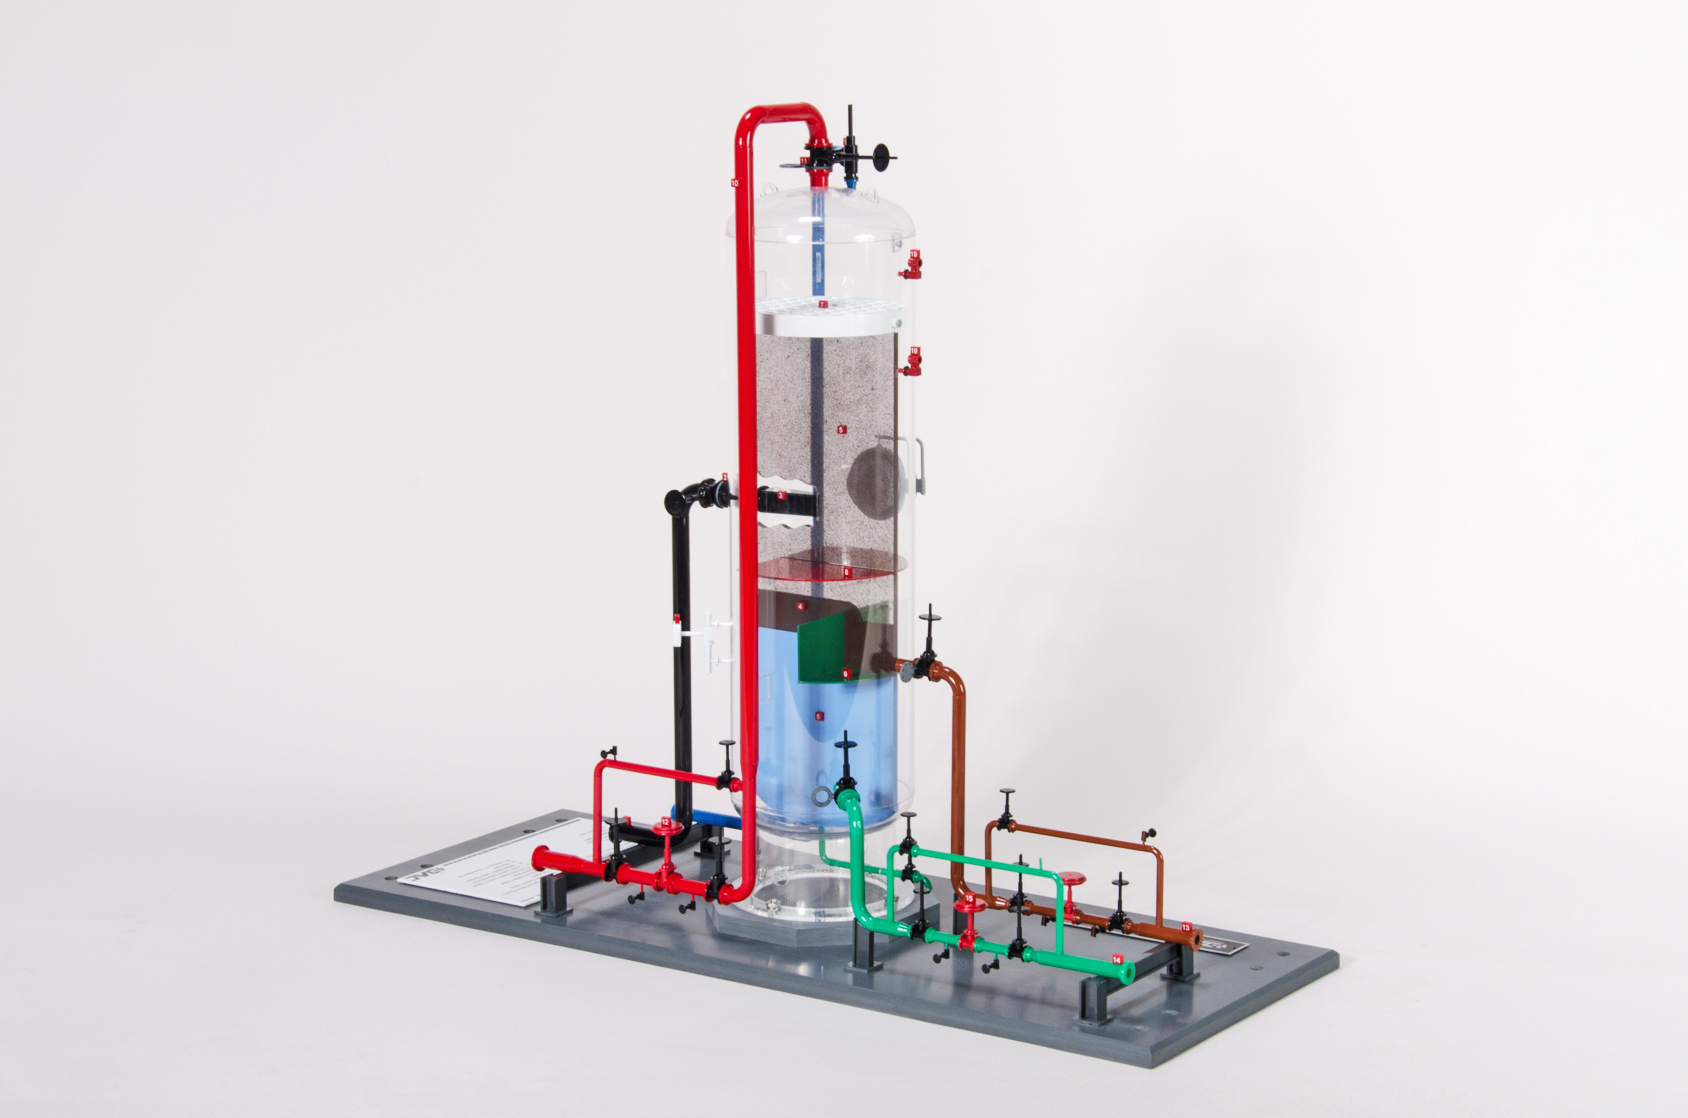 DAC Worldwide | 295-115 | Vertical Cross-Flow Separator Model - Right View